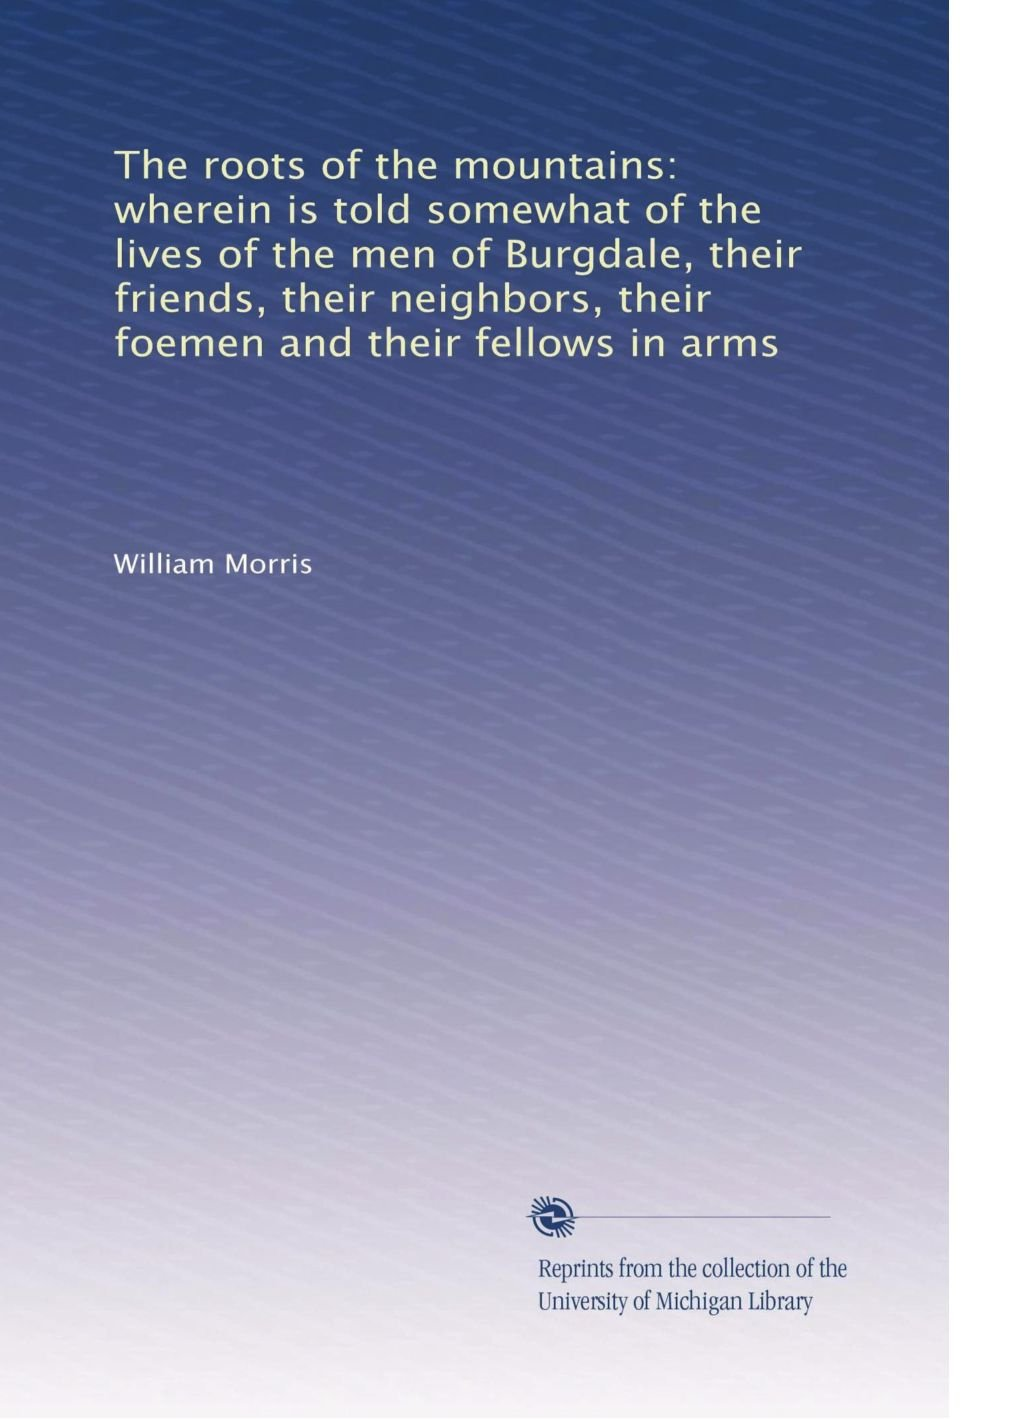 The roots of the mountains: wherein is told somewhat of the lives of the men of Burgdale, their friends, their neighbors, their foemen and their fellows in arms PDF